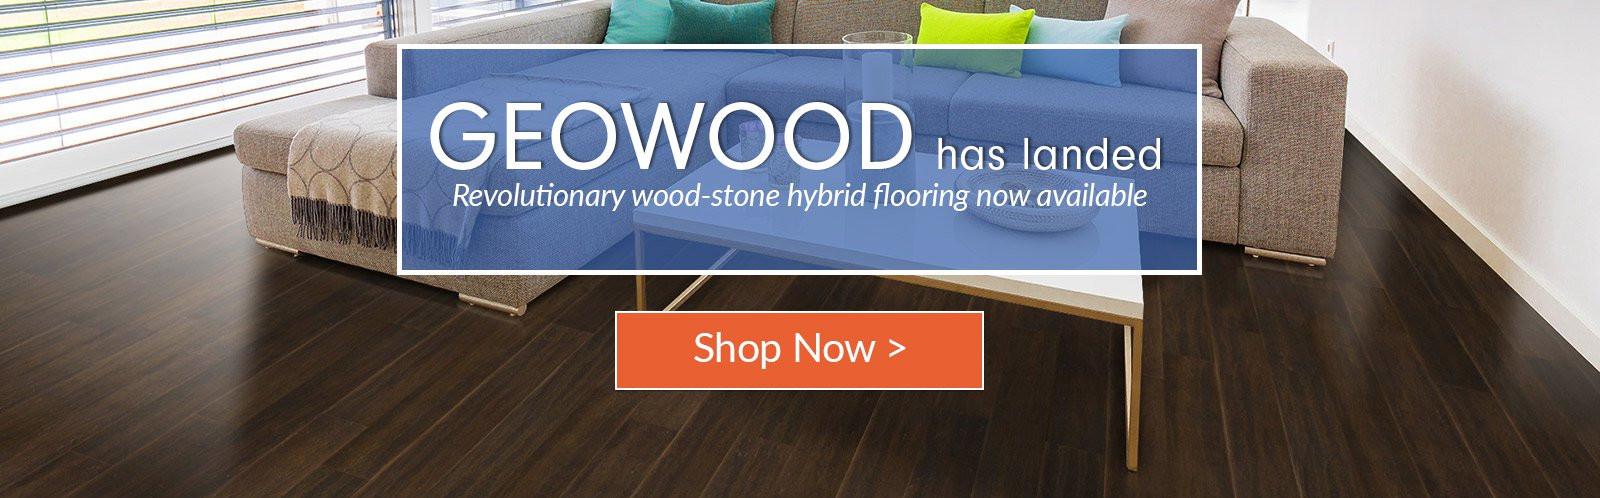 elm desert hardwood flooring of green building construction materials and home decor cali bamboo with regard to geowood launch homepage slider